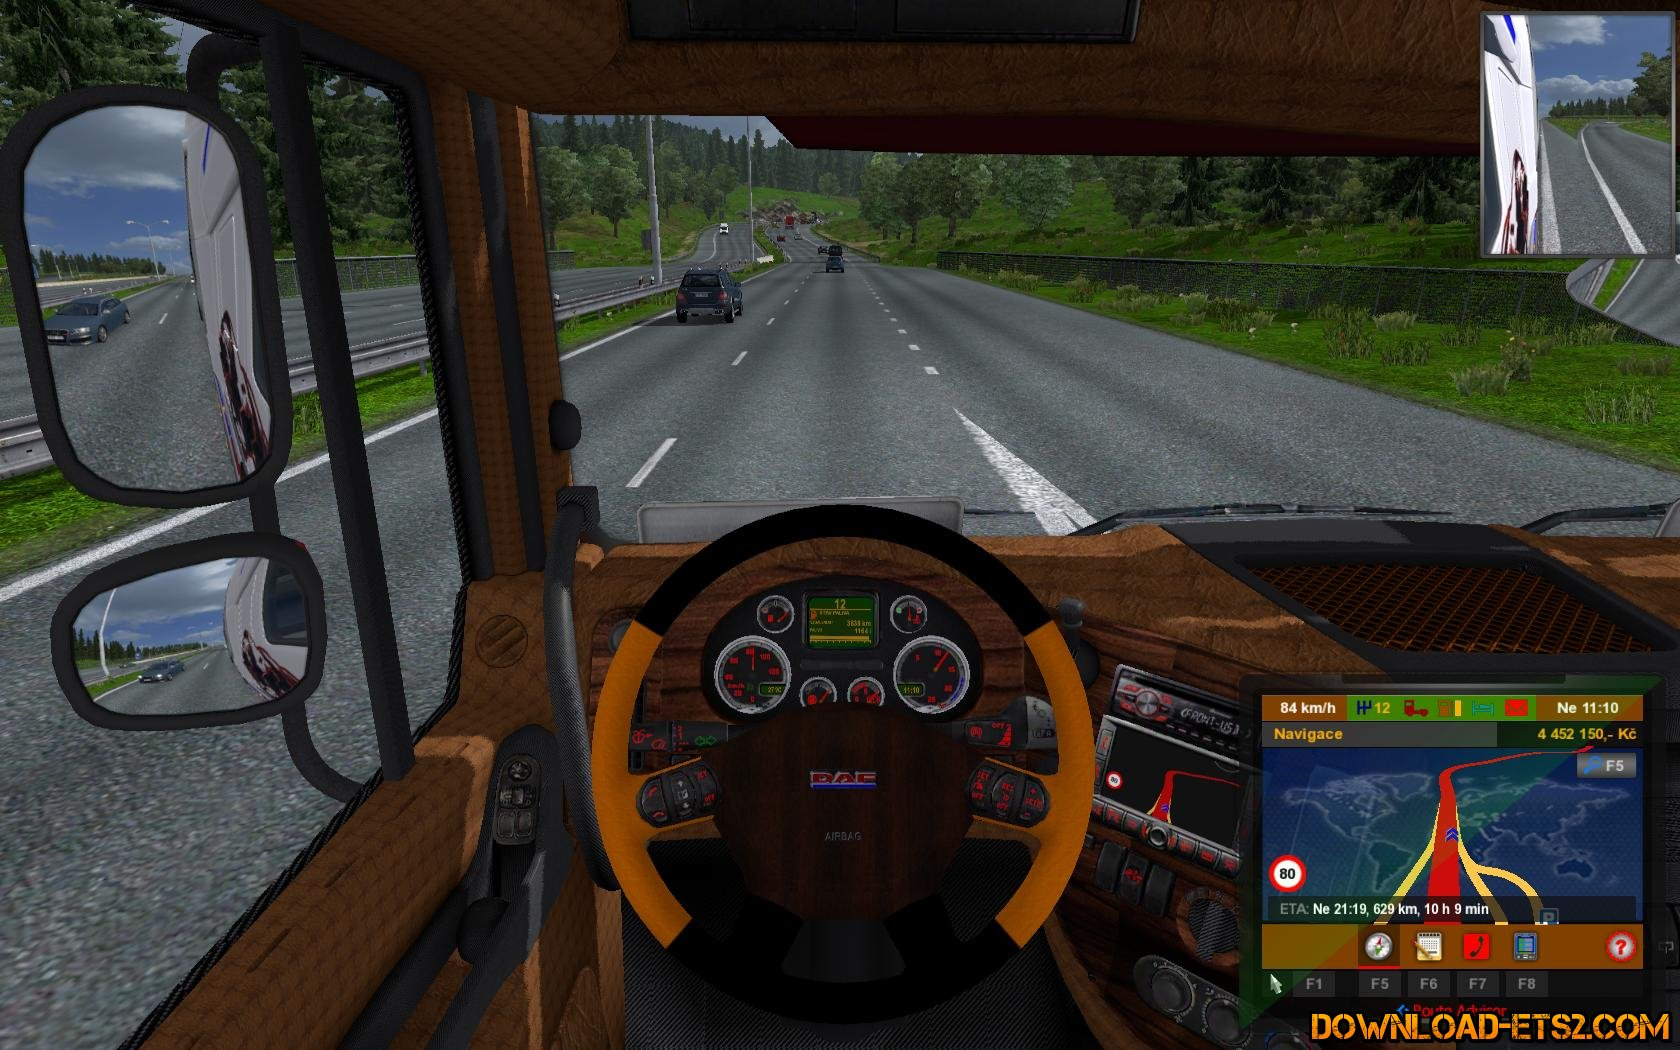 NEW ROUTE ADVISOR v2.0 by Hummer2905